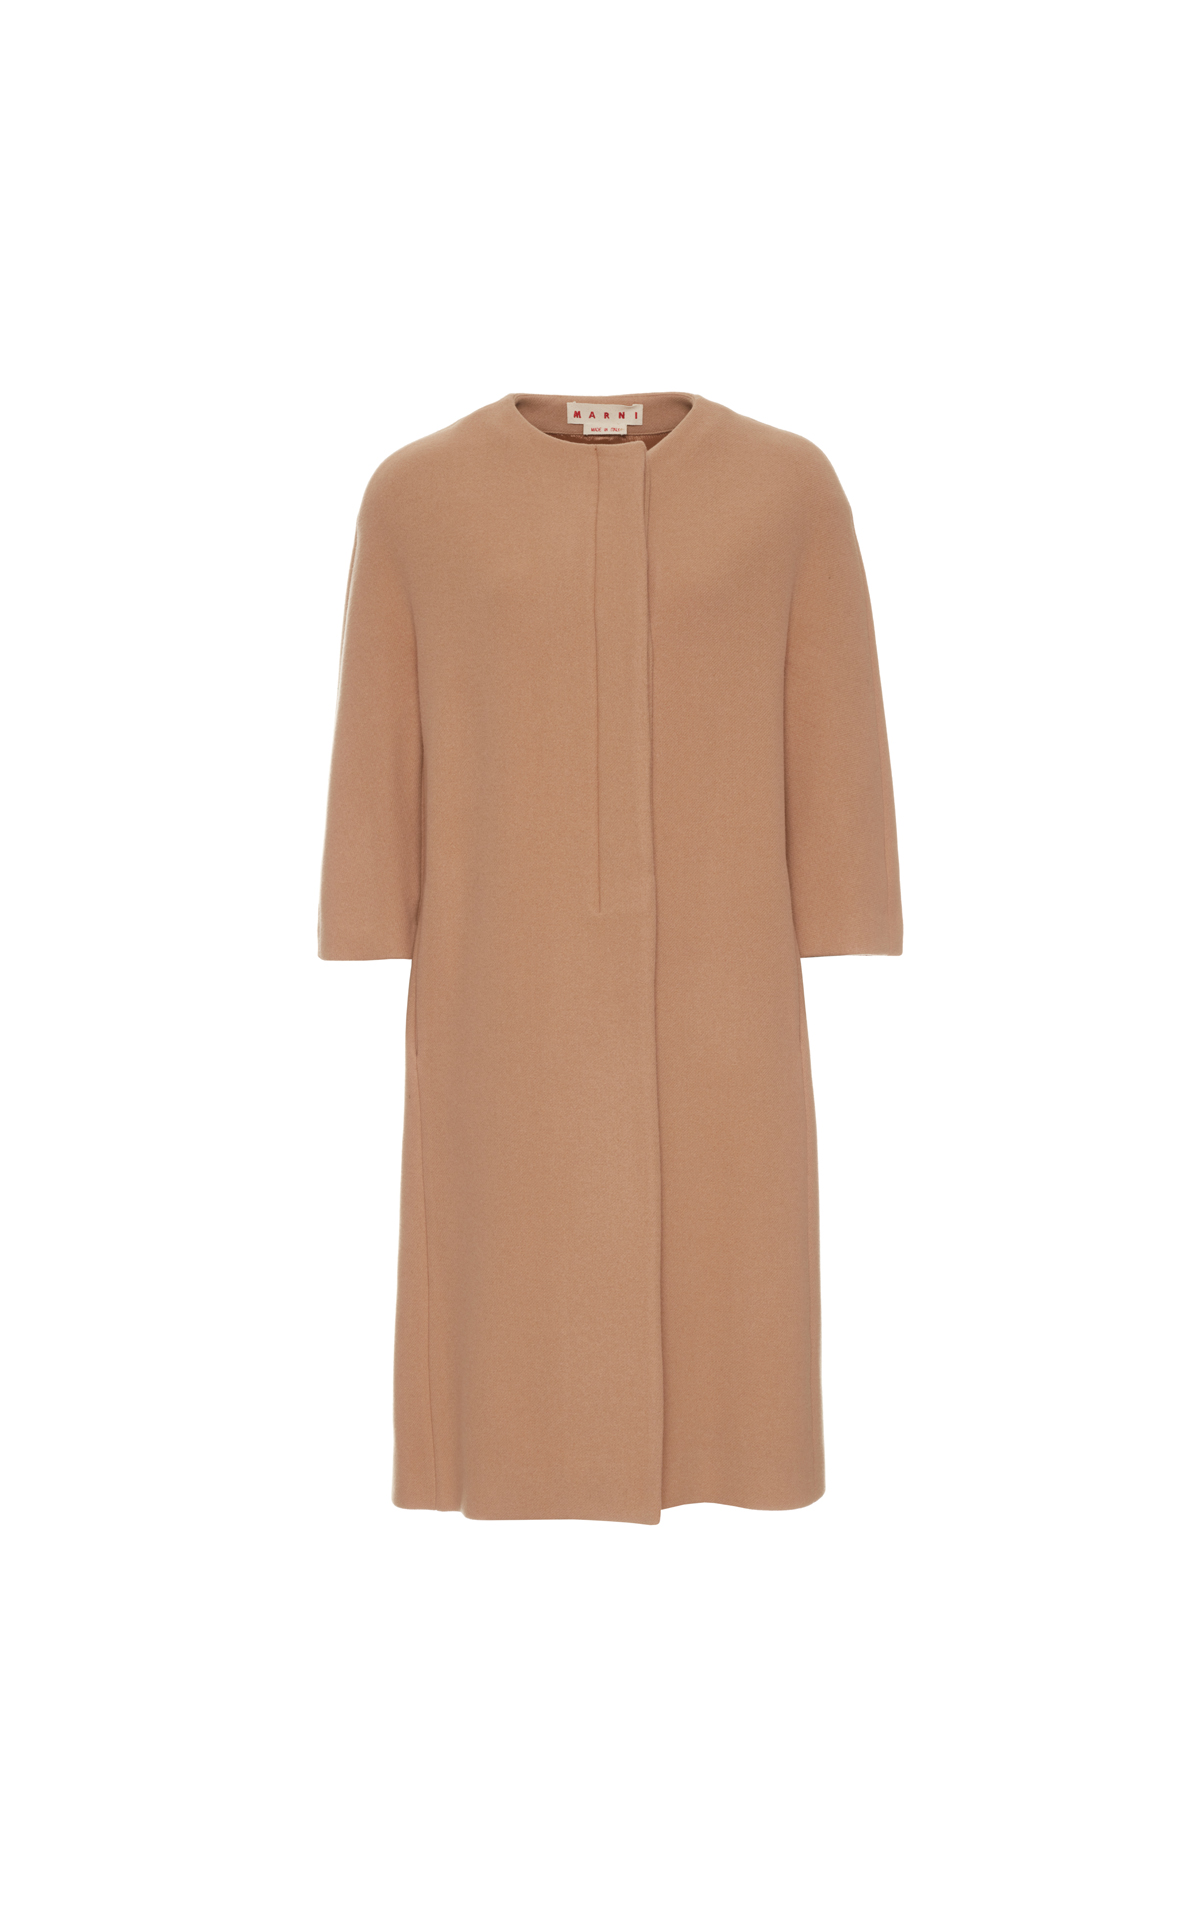 Marni Coat diagonal felt caramel from Bicester Village